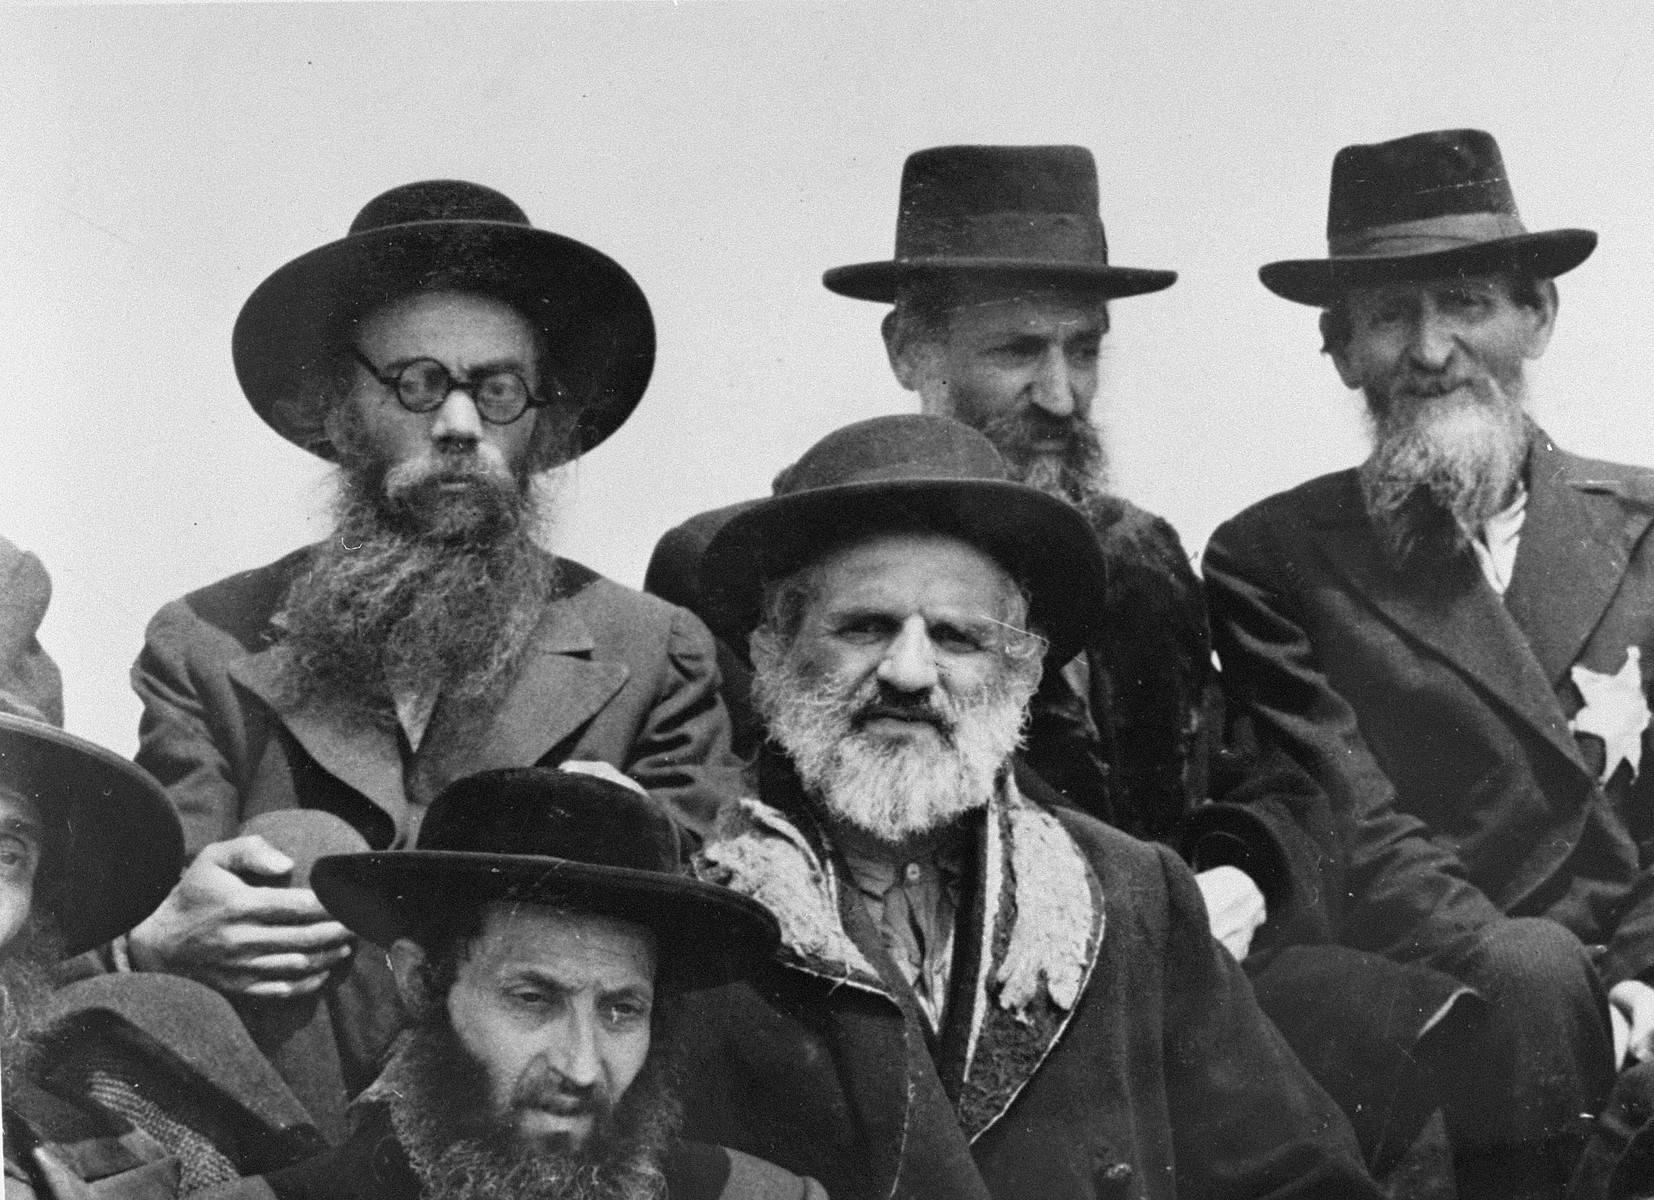 A group of religious Jews from Subcarpathian Rus wait on the ramp at Auschwitz-Birkenau.